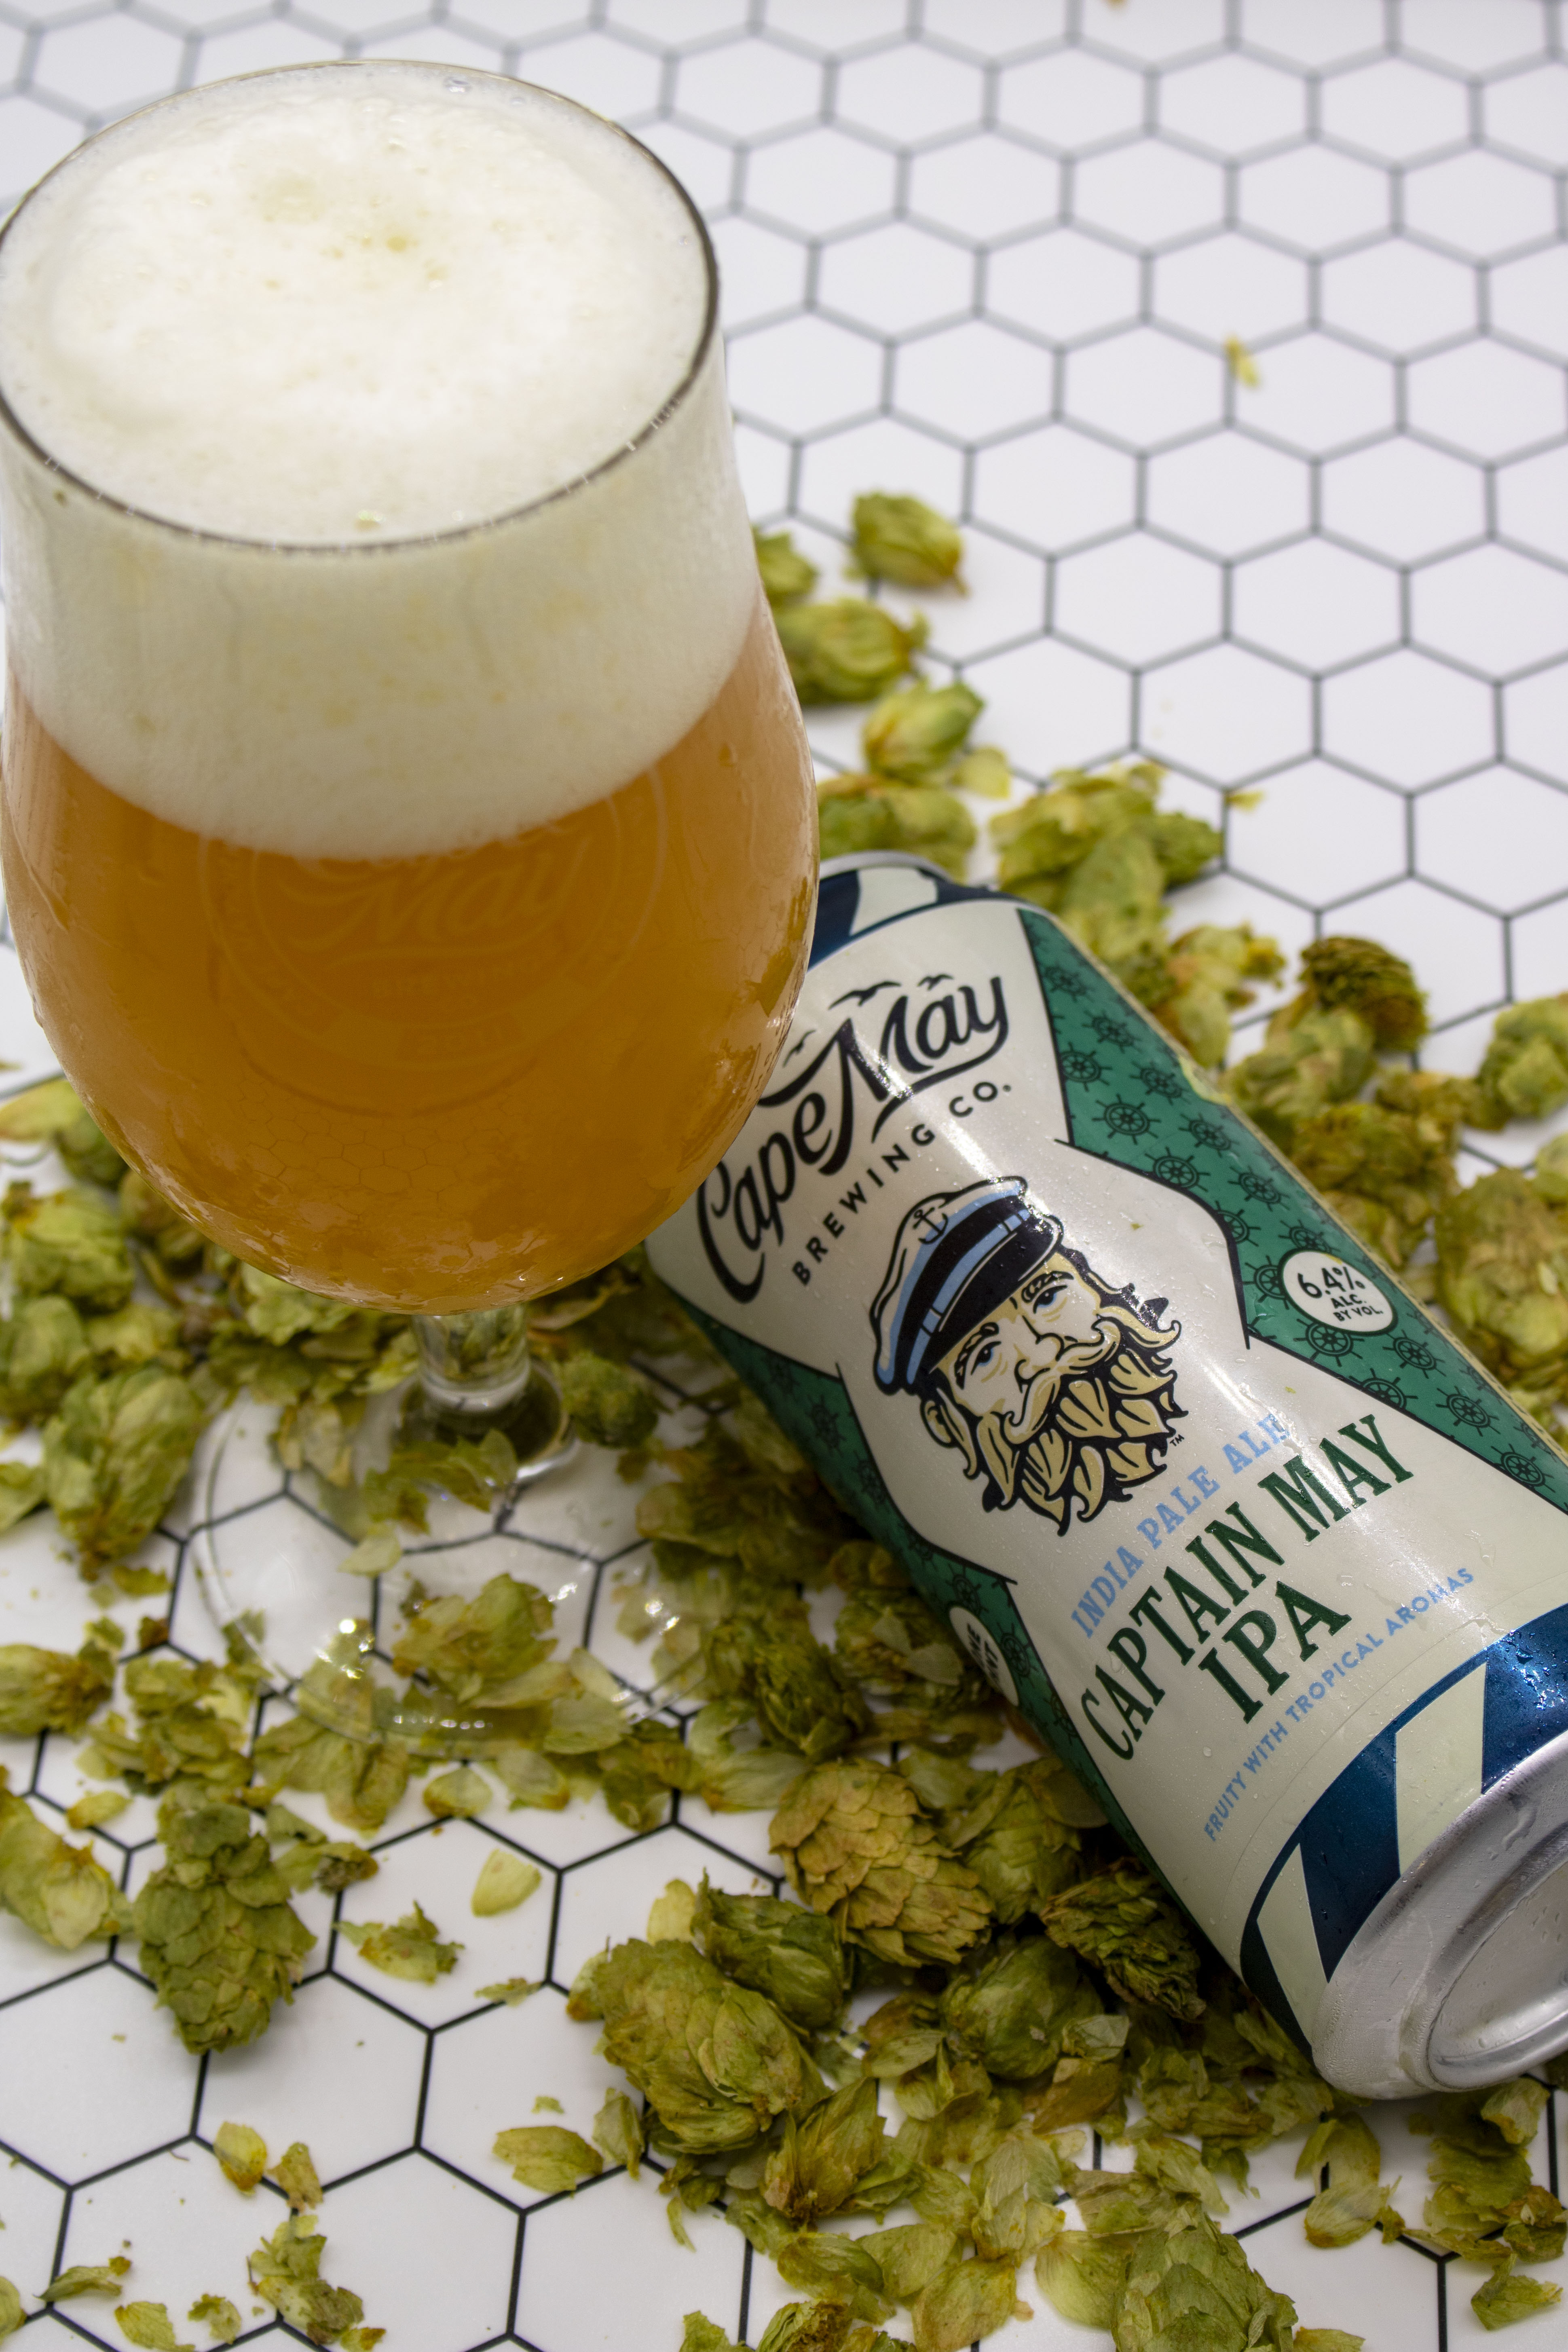 The Newest Brew -- Captain May IPA